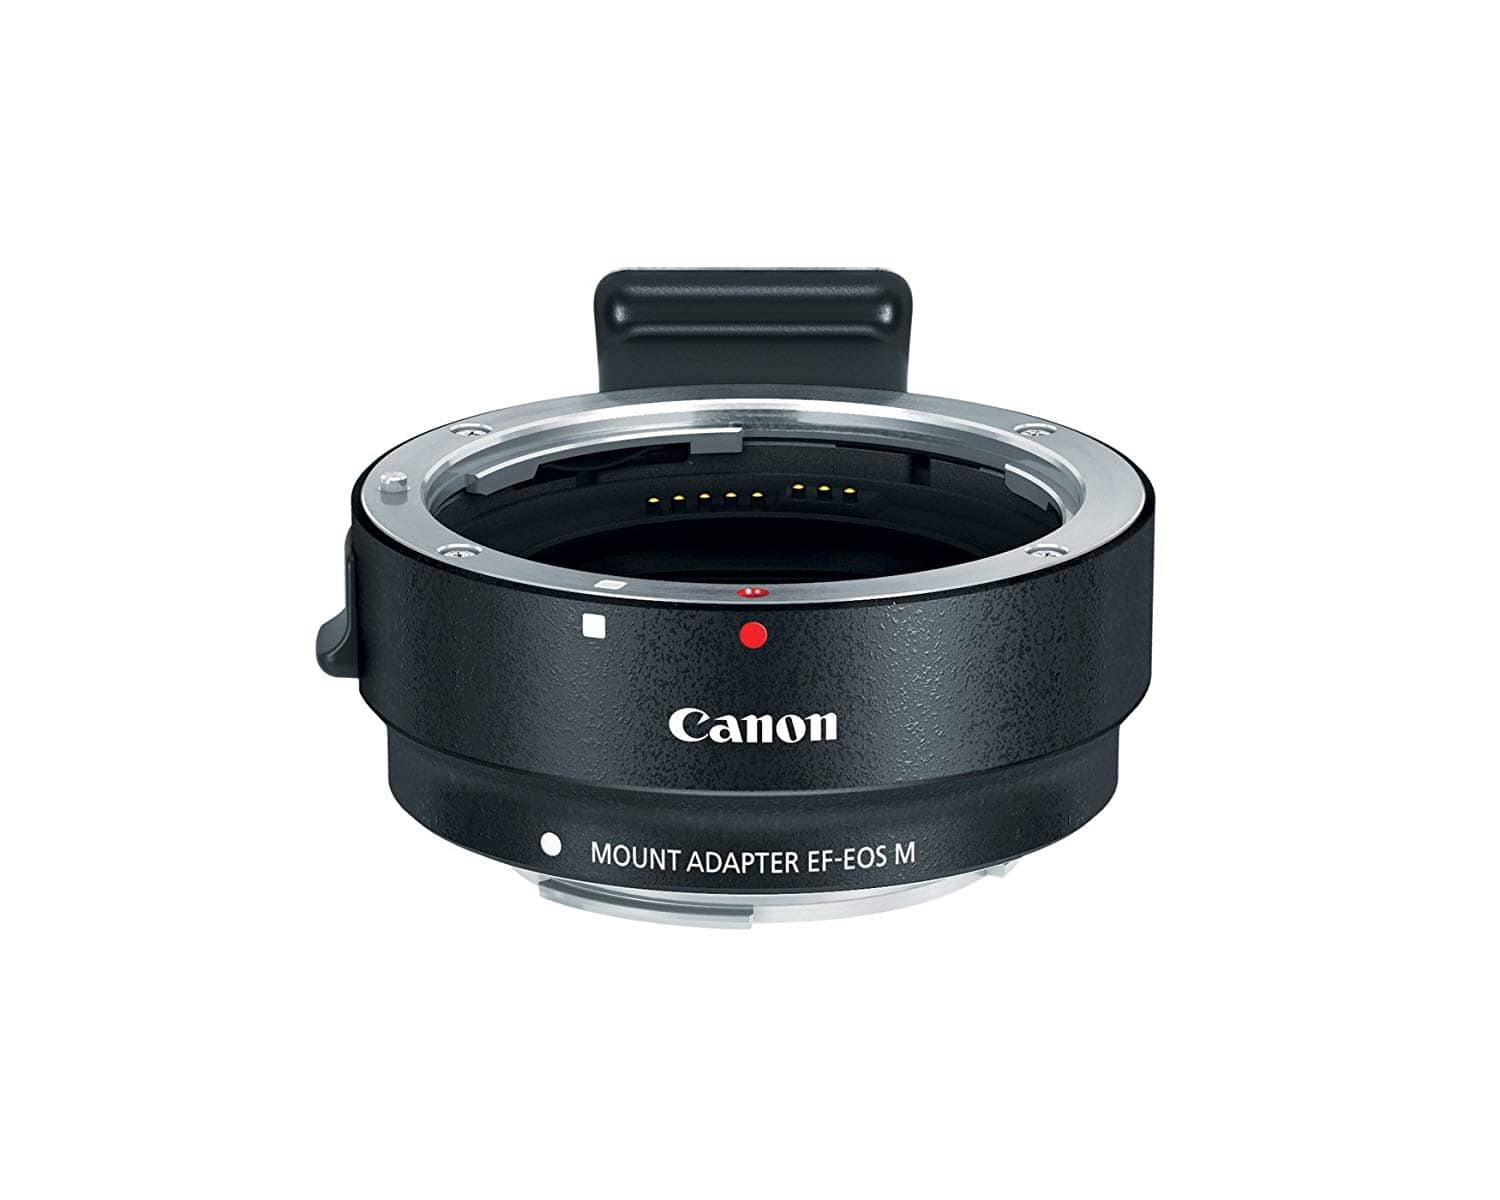 Canon EOS M Mount Adapter $109 at Amazon